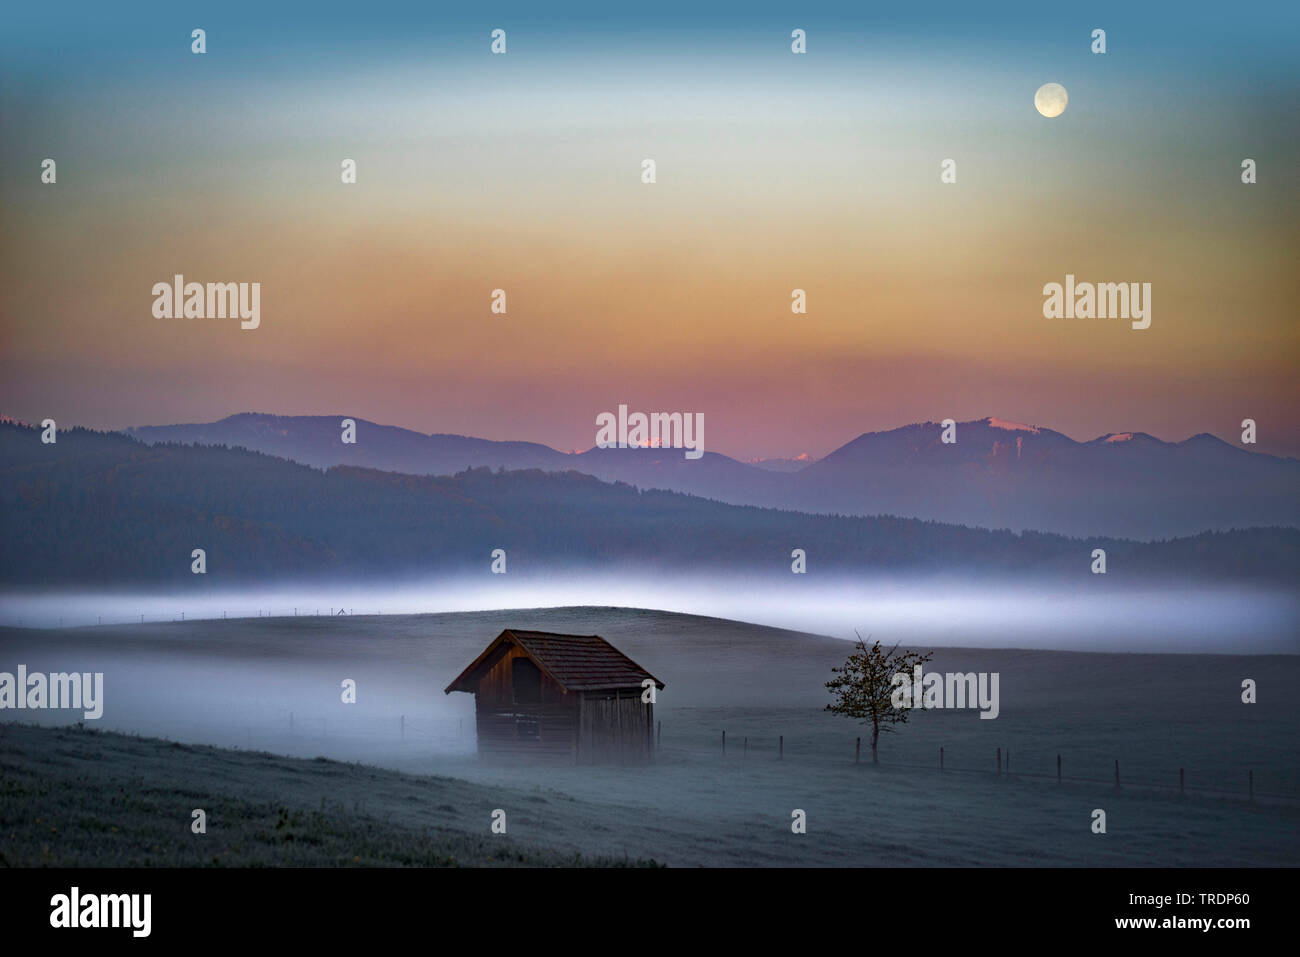 Morgennebel ueber Gebirgslandschaft in der Naehe von Murnau, Deutschland, Bayern, Oberbayern, Murnau | mountain landscape in morning mist near Murnau, - Stock Image